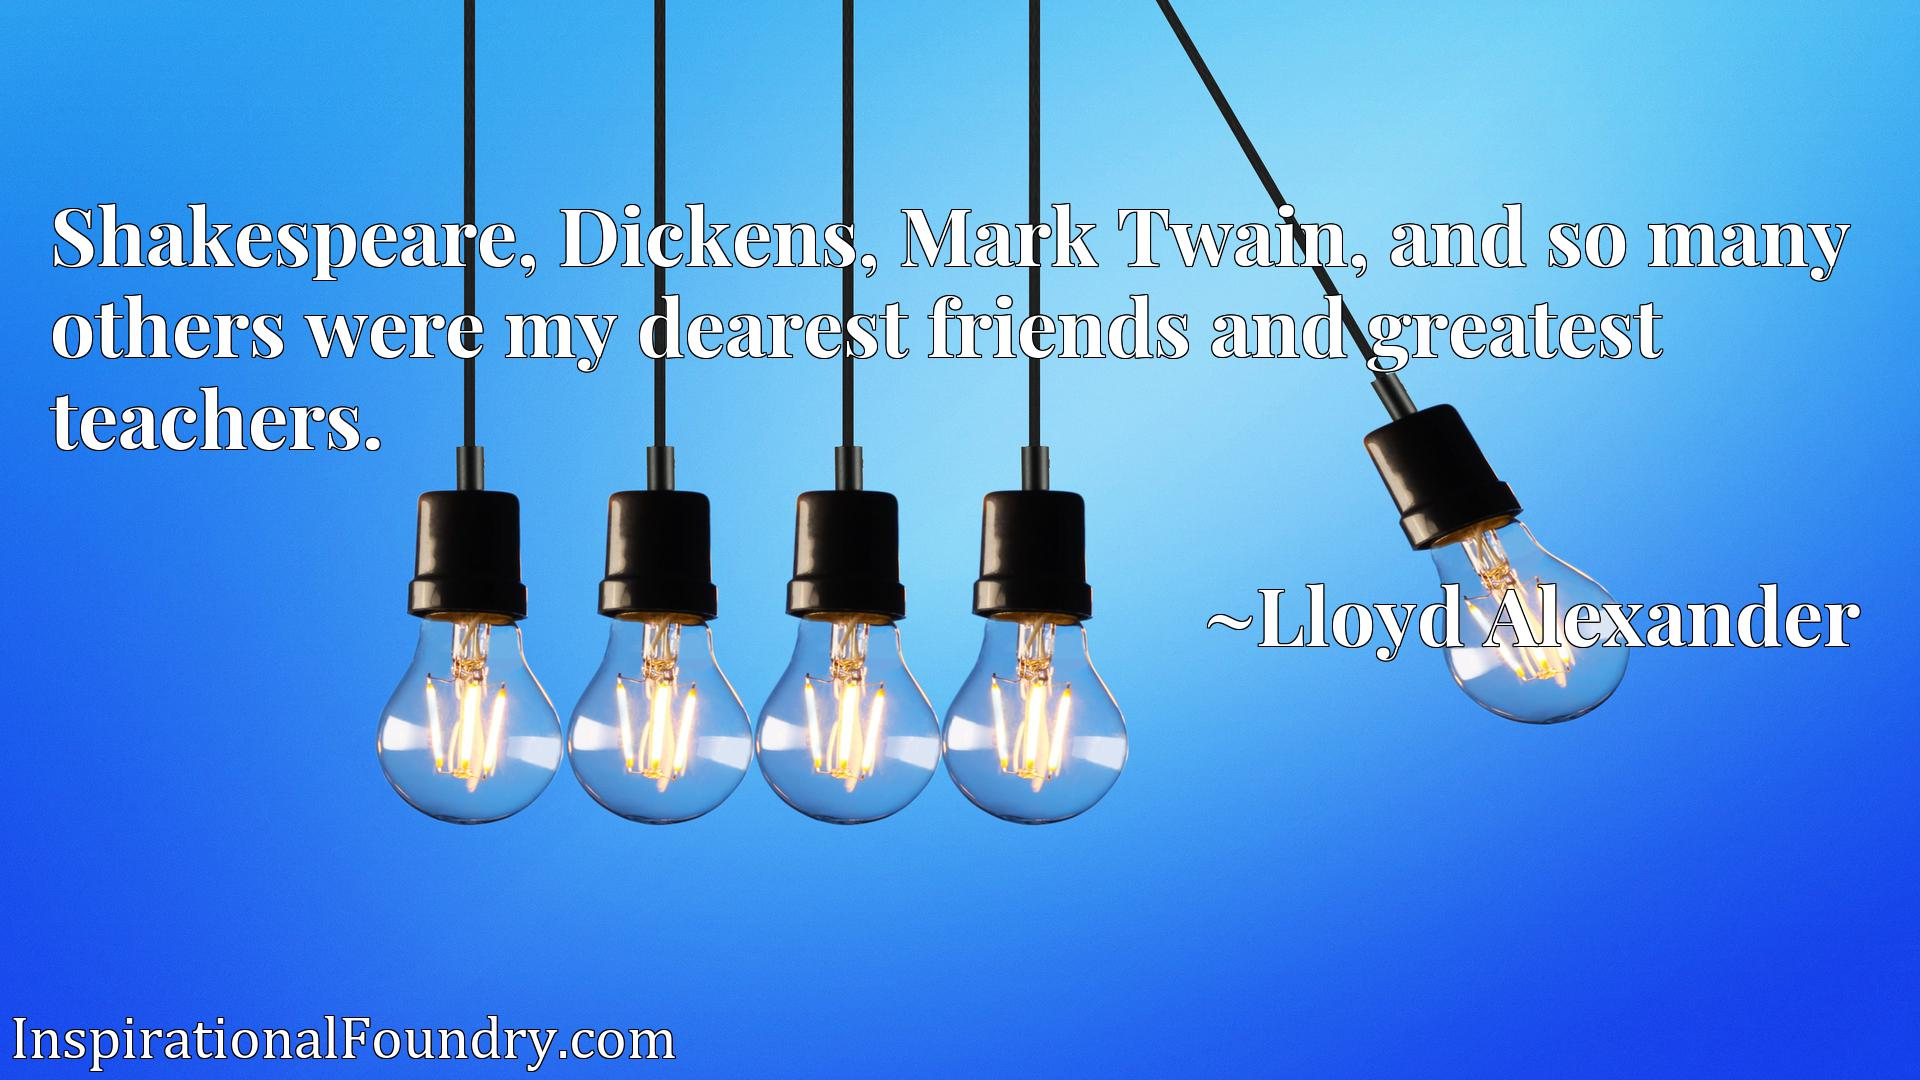 Shakespeare, Dickens, Mark Twain, and so many others were my dearest friends and greatest teachers.